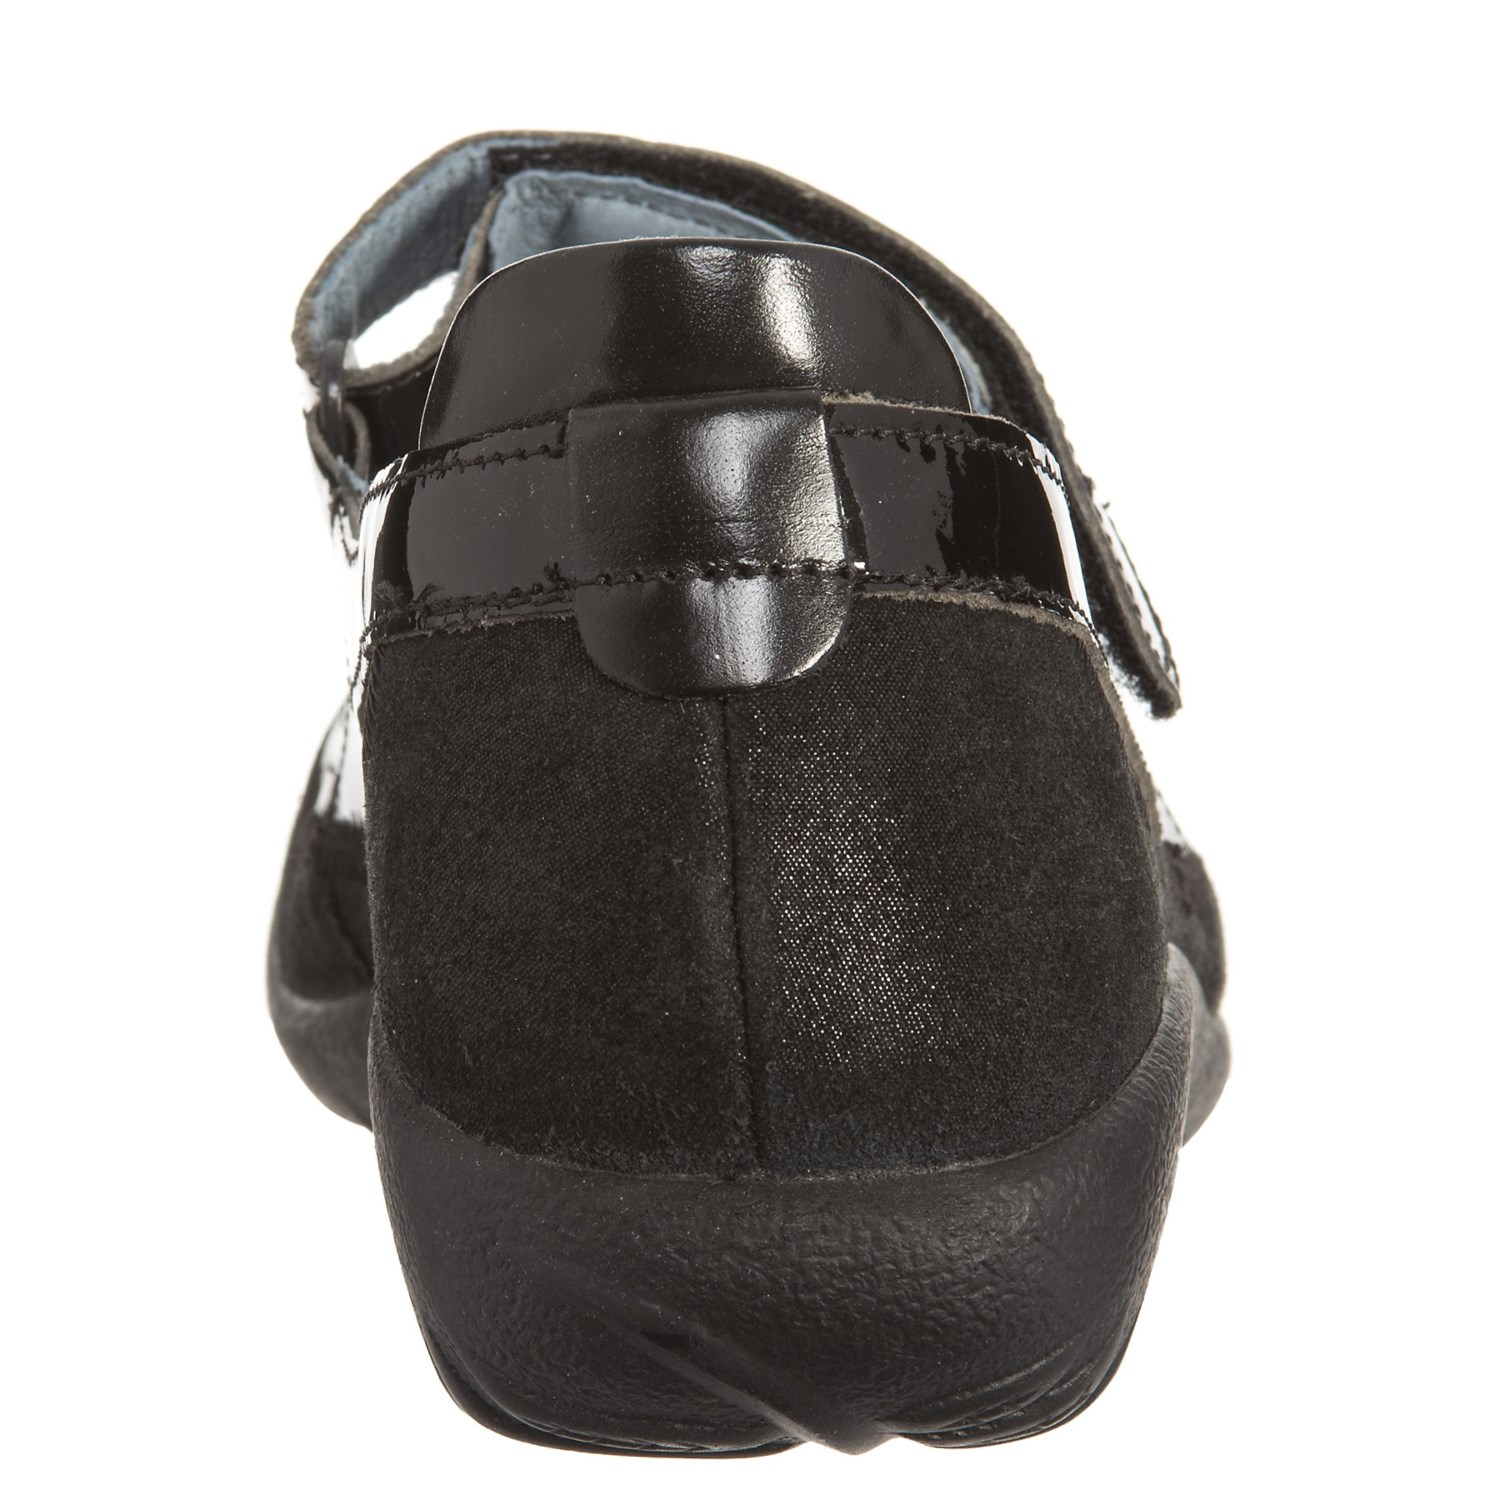 aa2c93c4ea7a Naot Kirei Mary Jane Shoes (For Women) - Save 35%